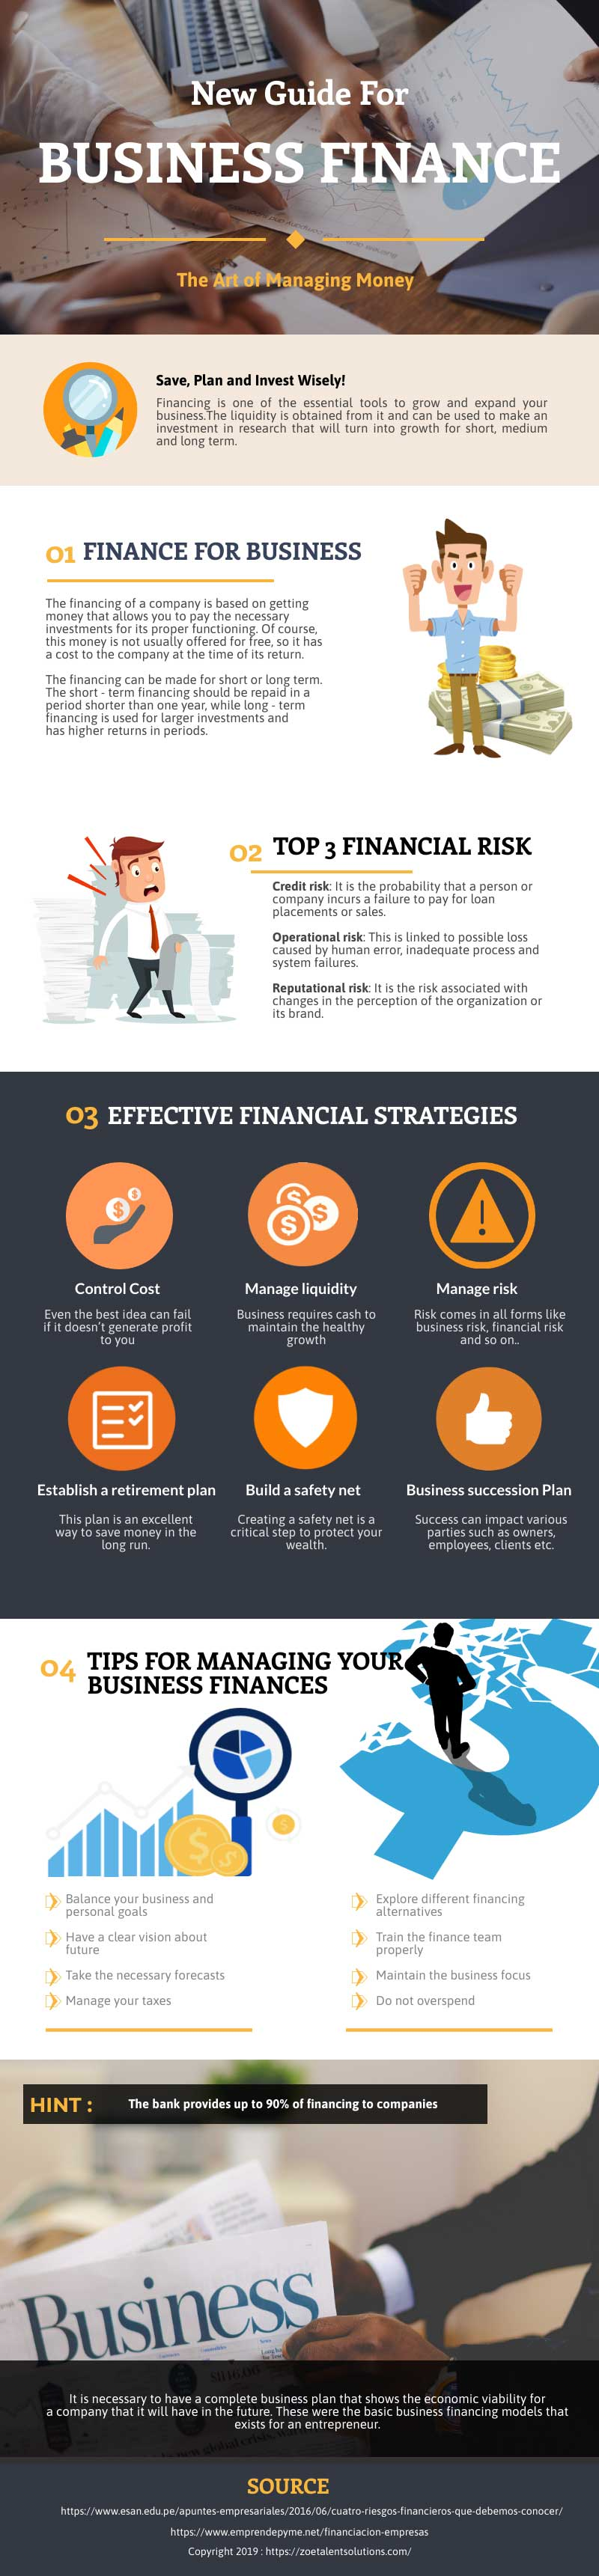 New-Guide-For-Business-Finance-The-Art-Of-Managing-Money